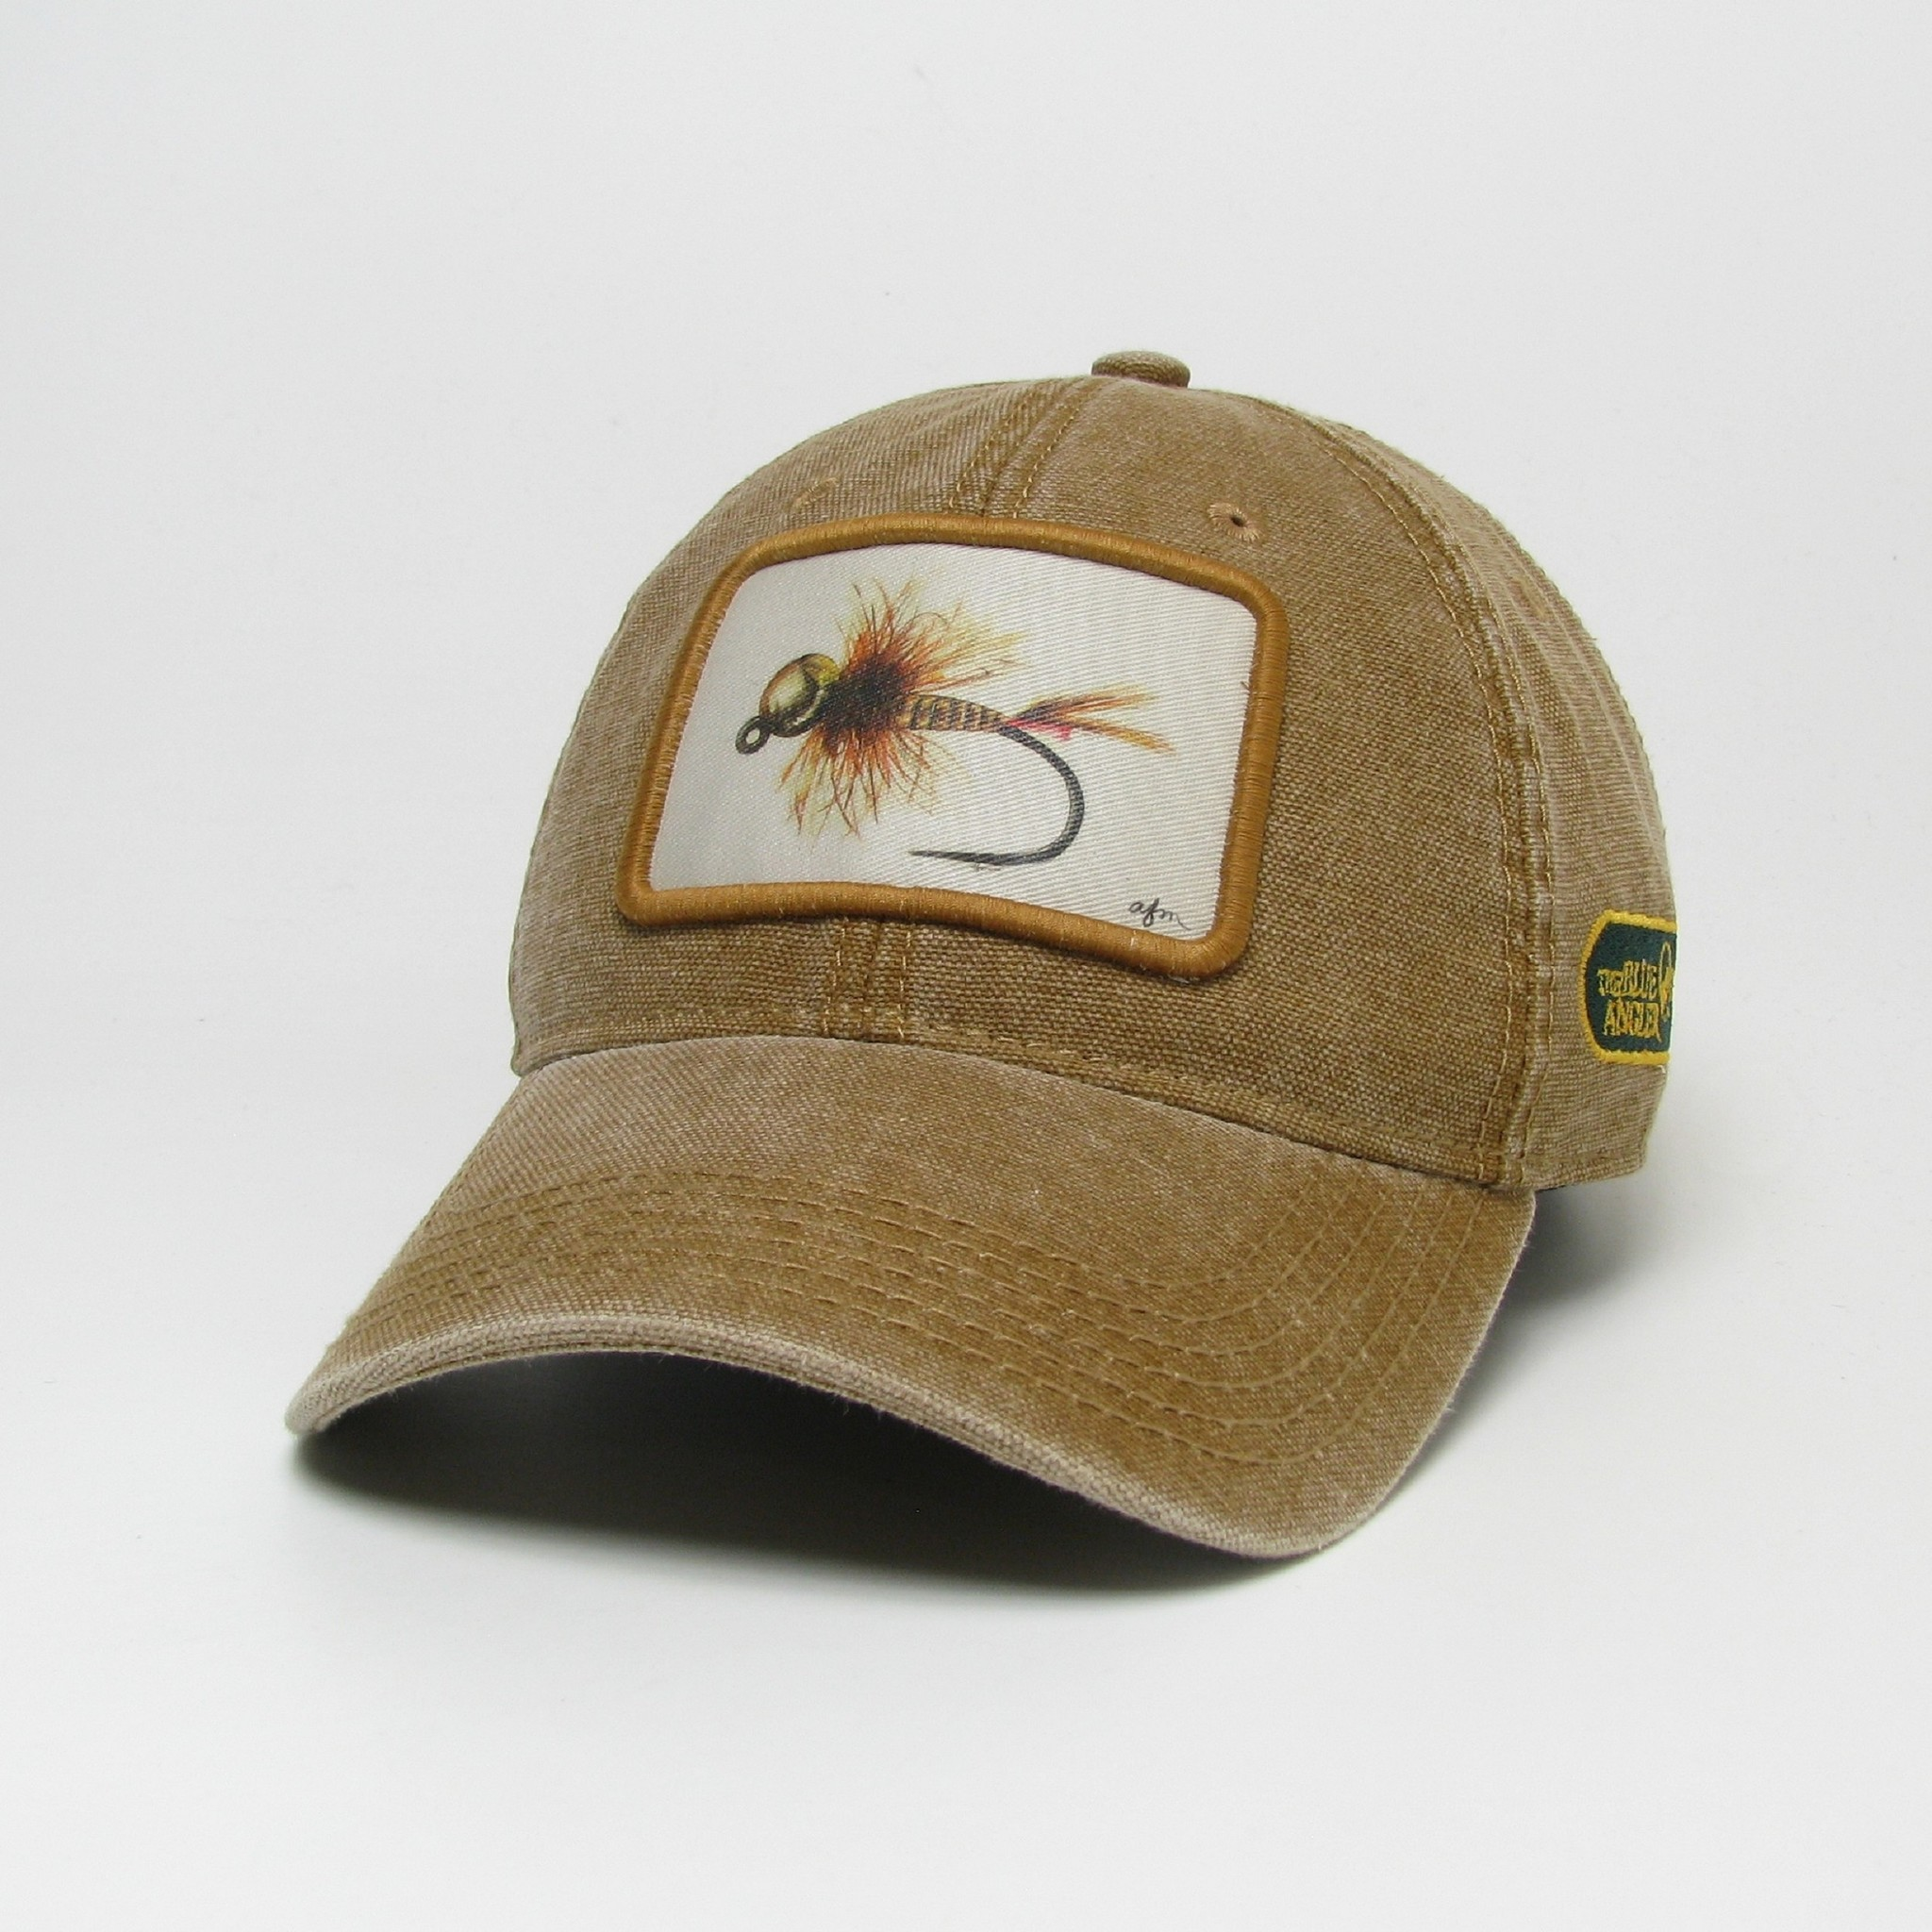 Midwest and Beyond Midwest and Beyond Blue Quill Fly-Camel Dashboard Non-Trucker